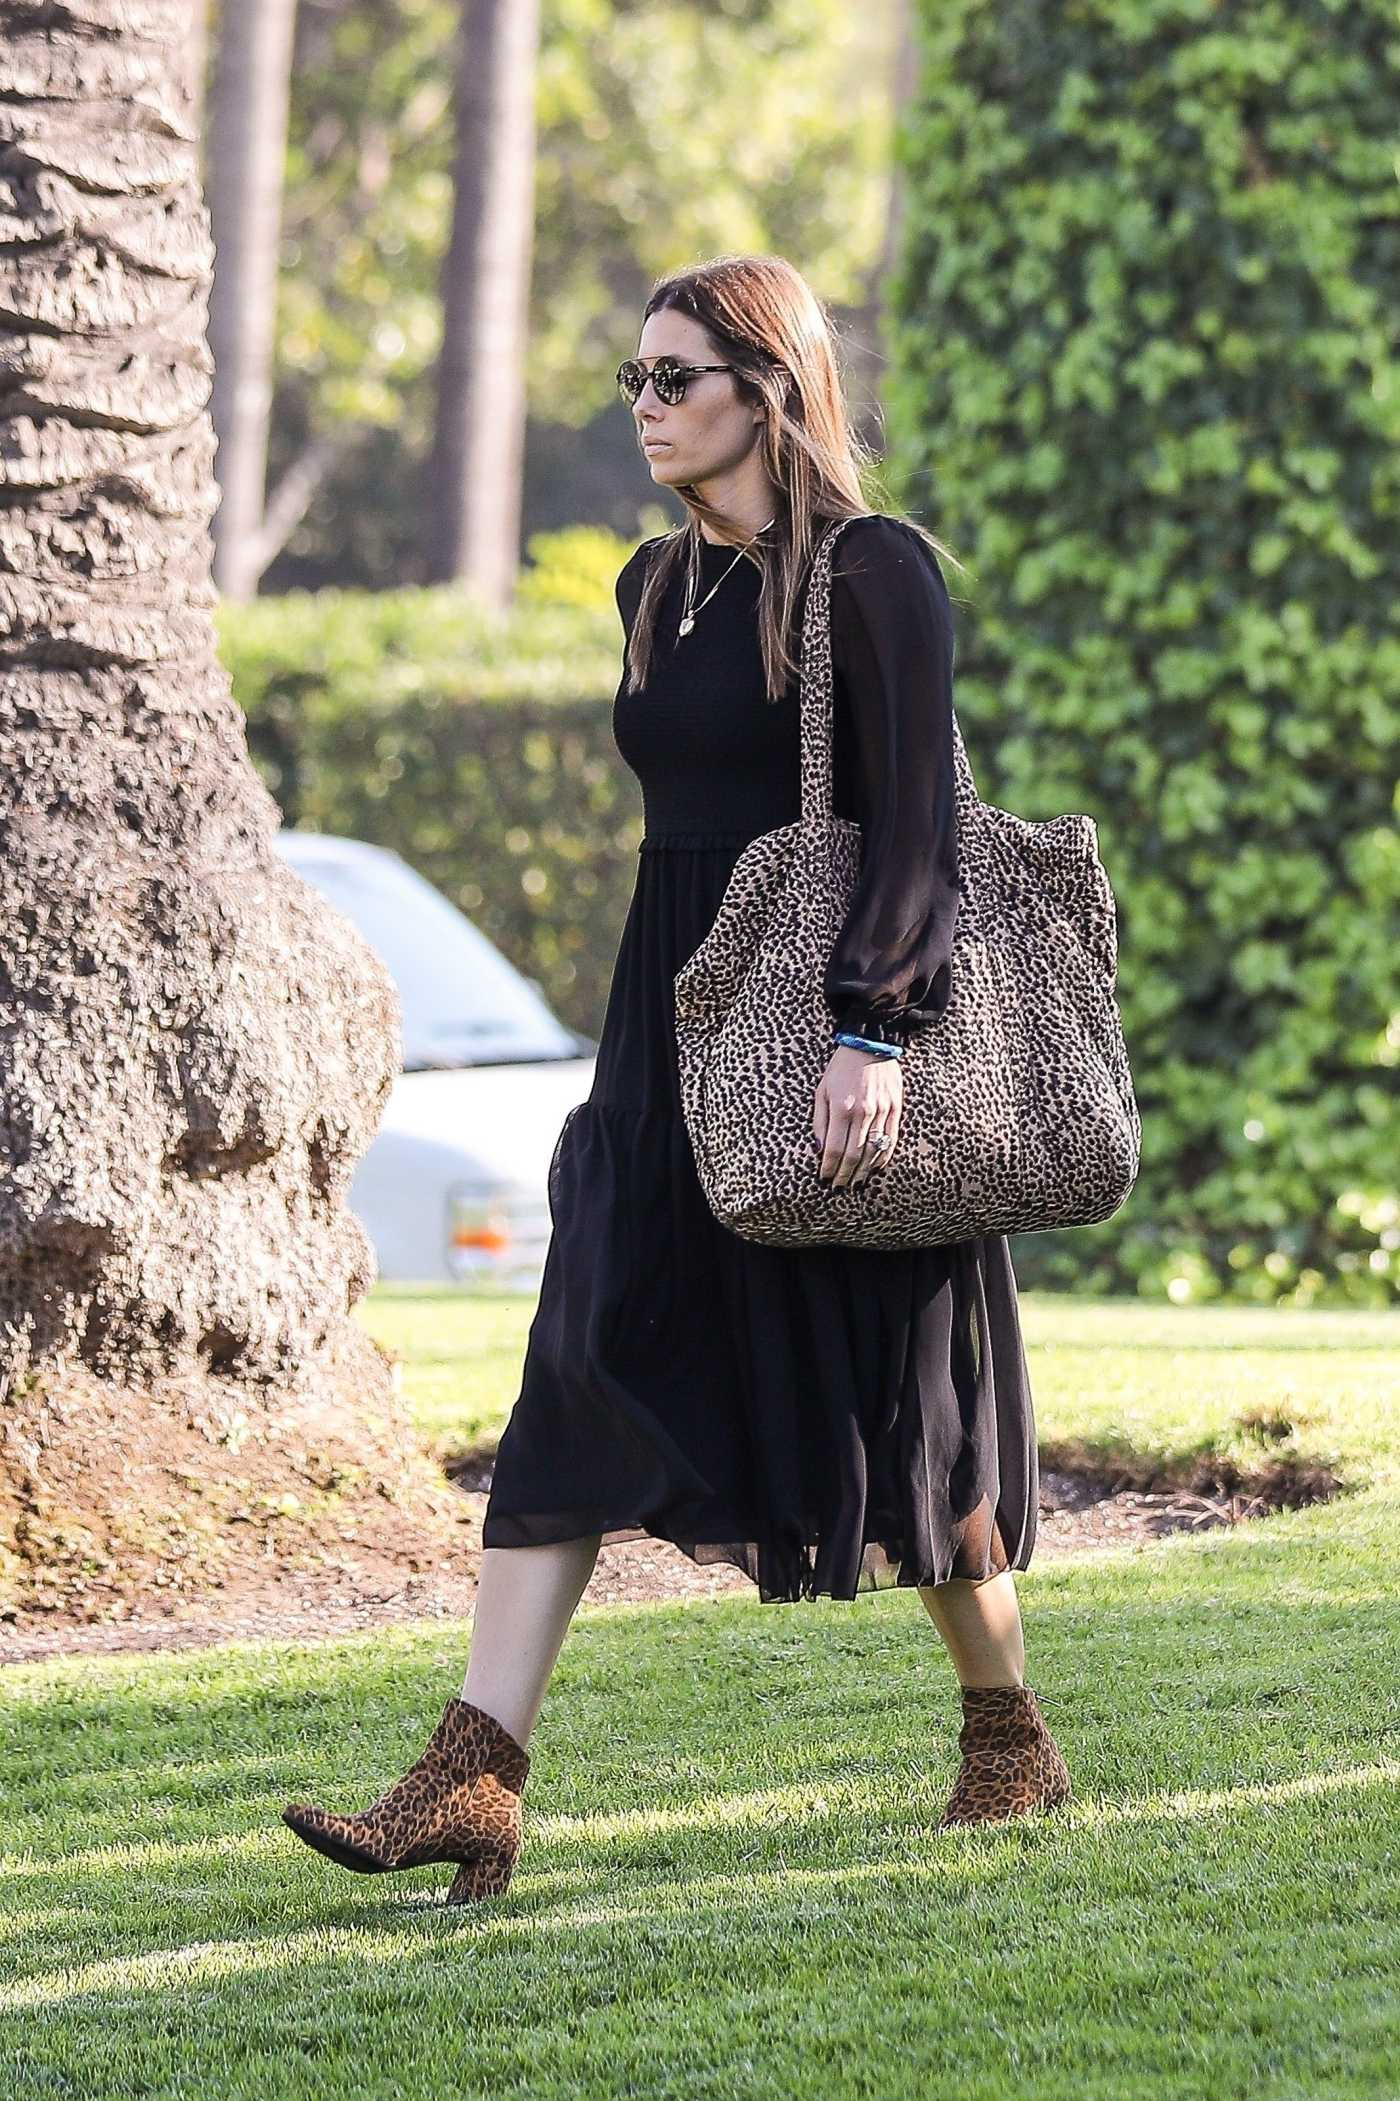 Jessica Biel in a Black Dress Out for a Business Meeting in Beverly Hills 11/07/2019